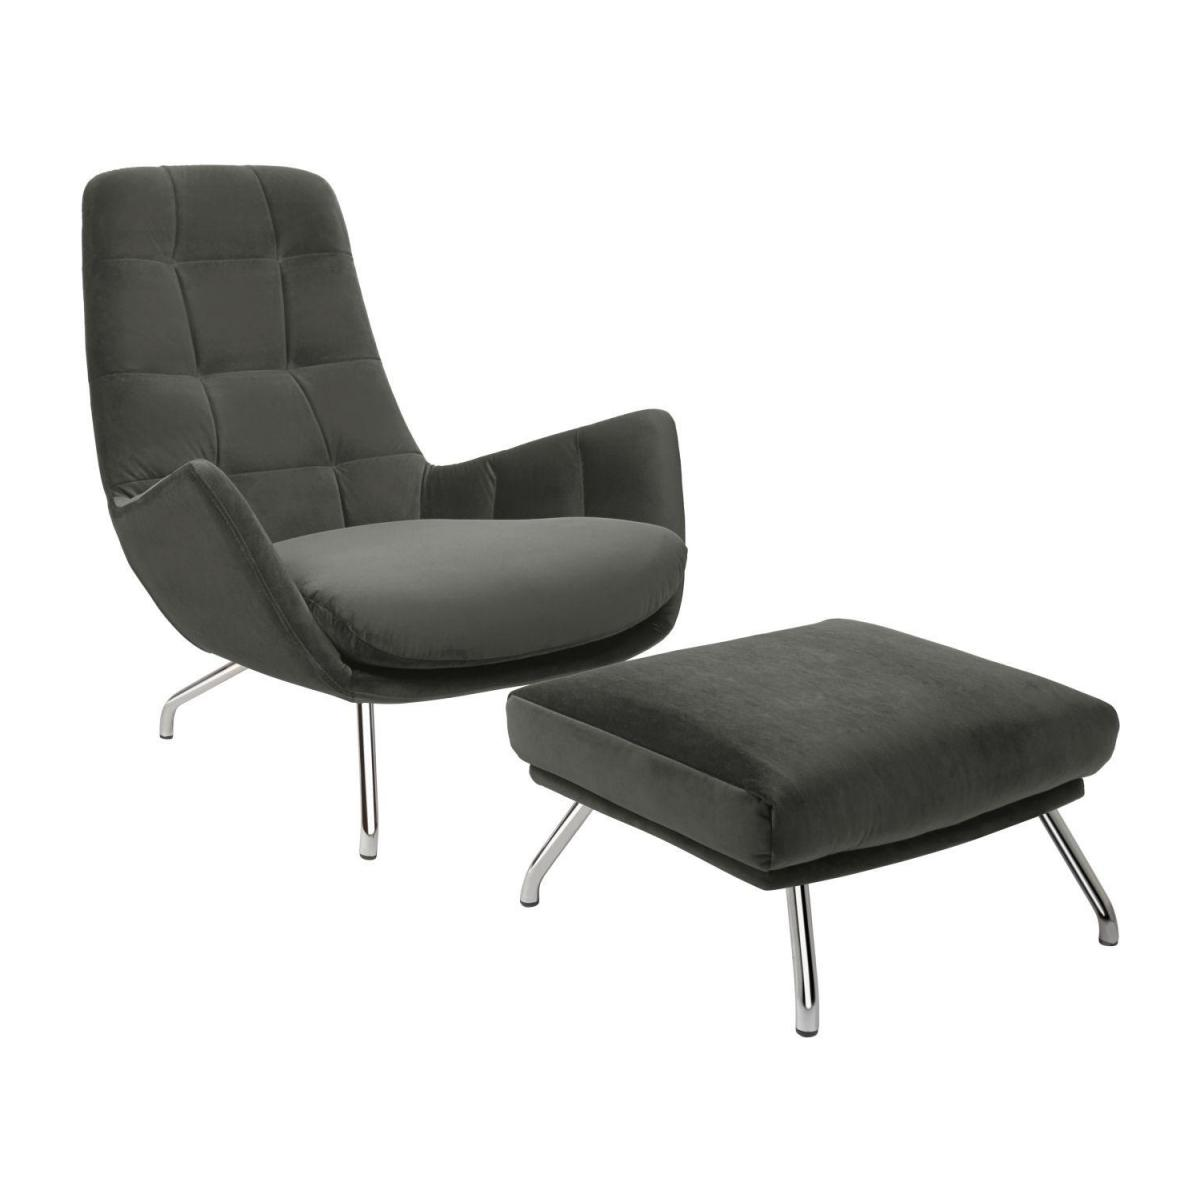 Armchair in Super Velvet fabric, silver grey with chromed metal legs n°2